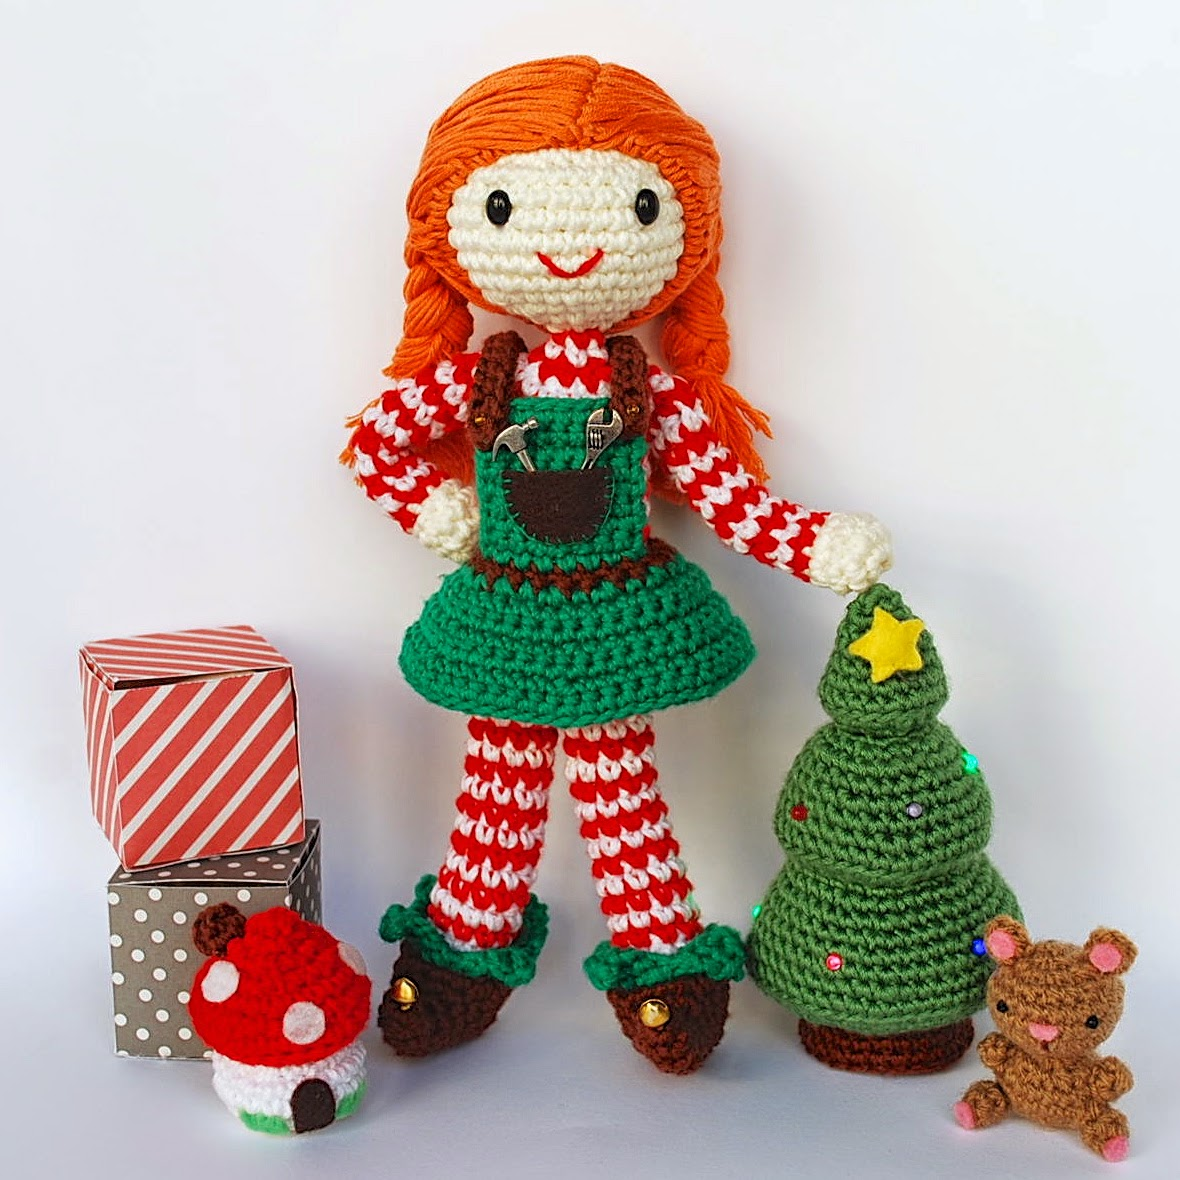 Crochet Santa's helper with Christmas tree and gifts